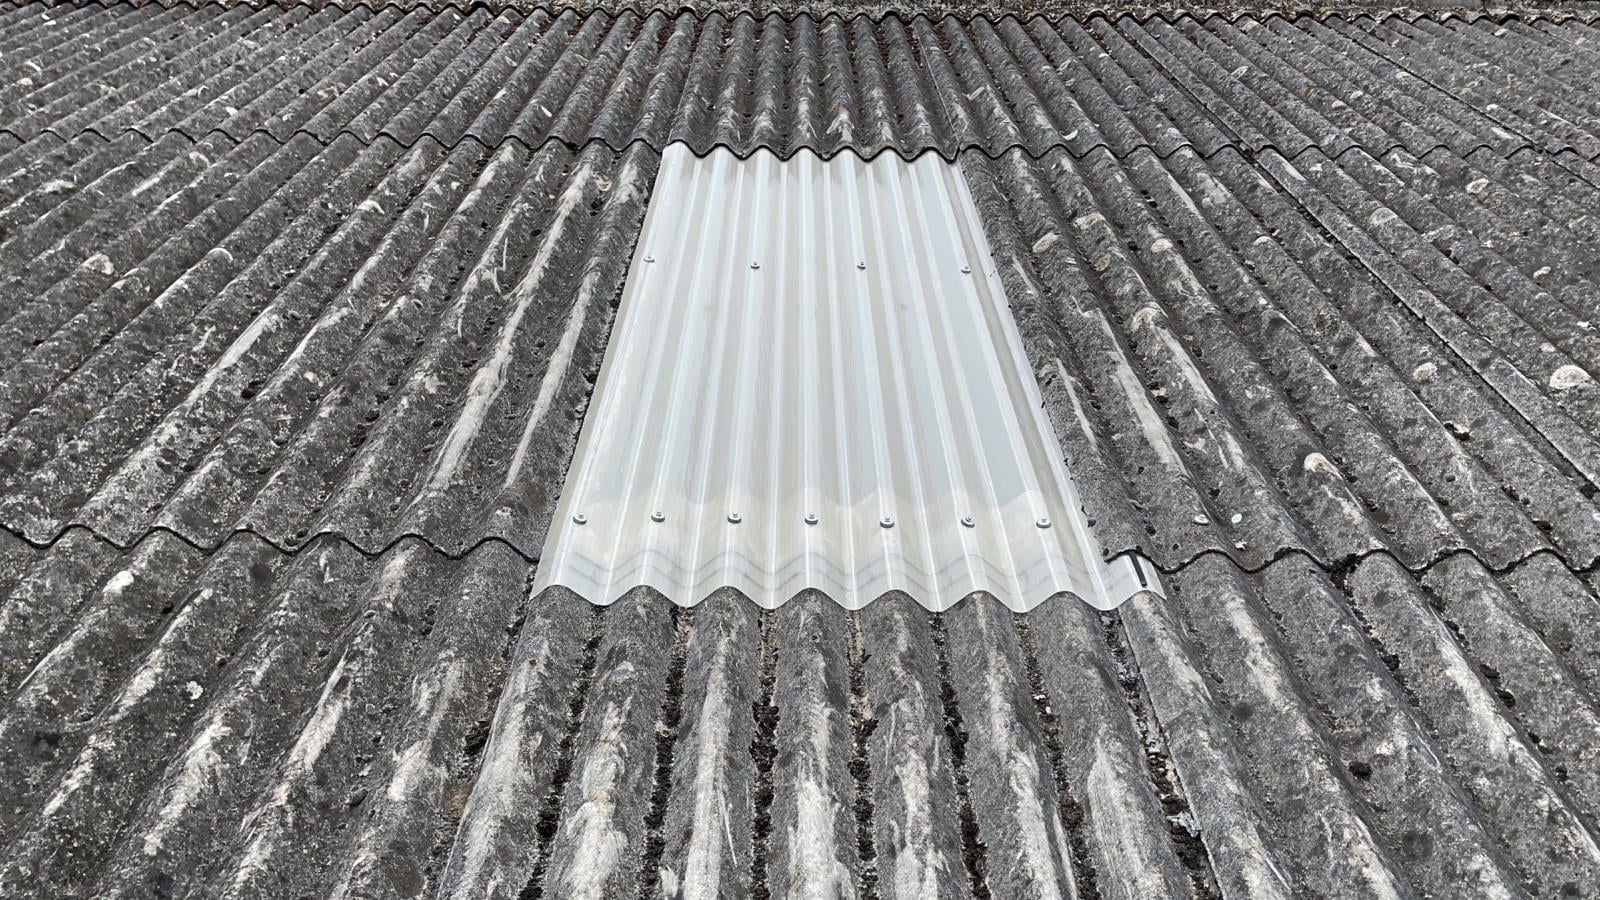 Rooflights on a commercial garage roof in Lancing West Sussex